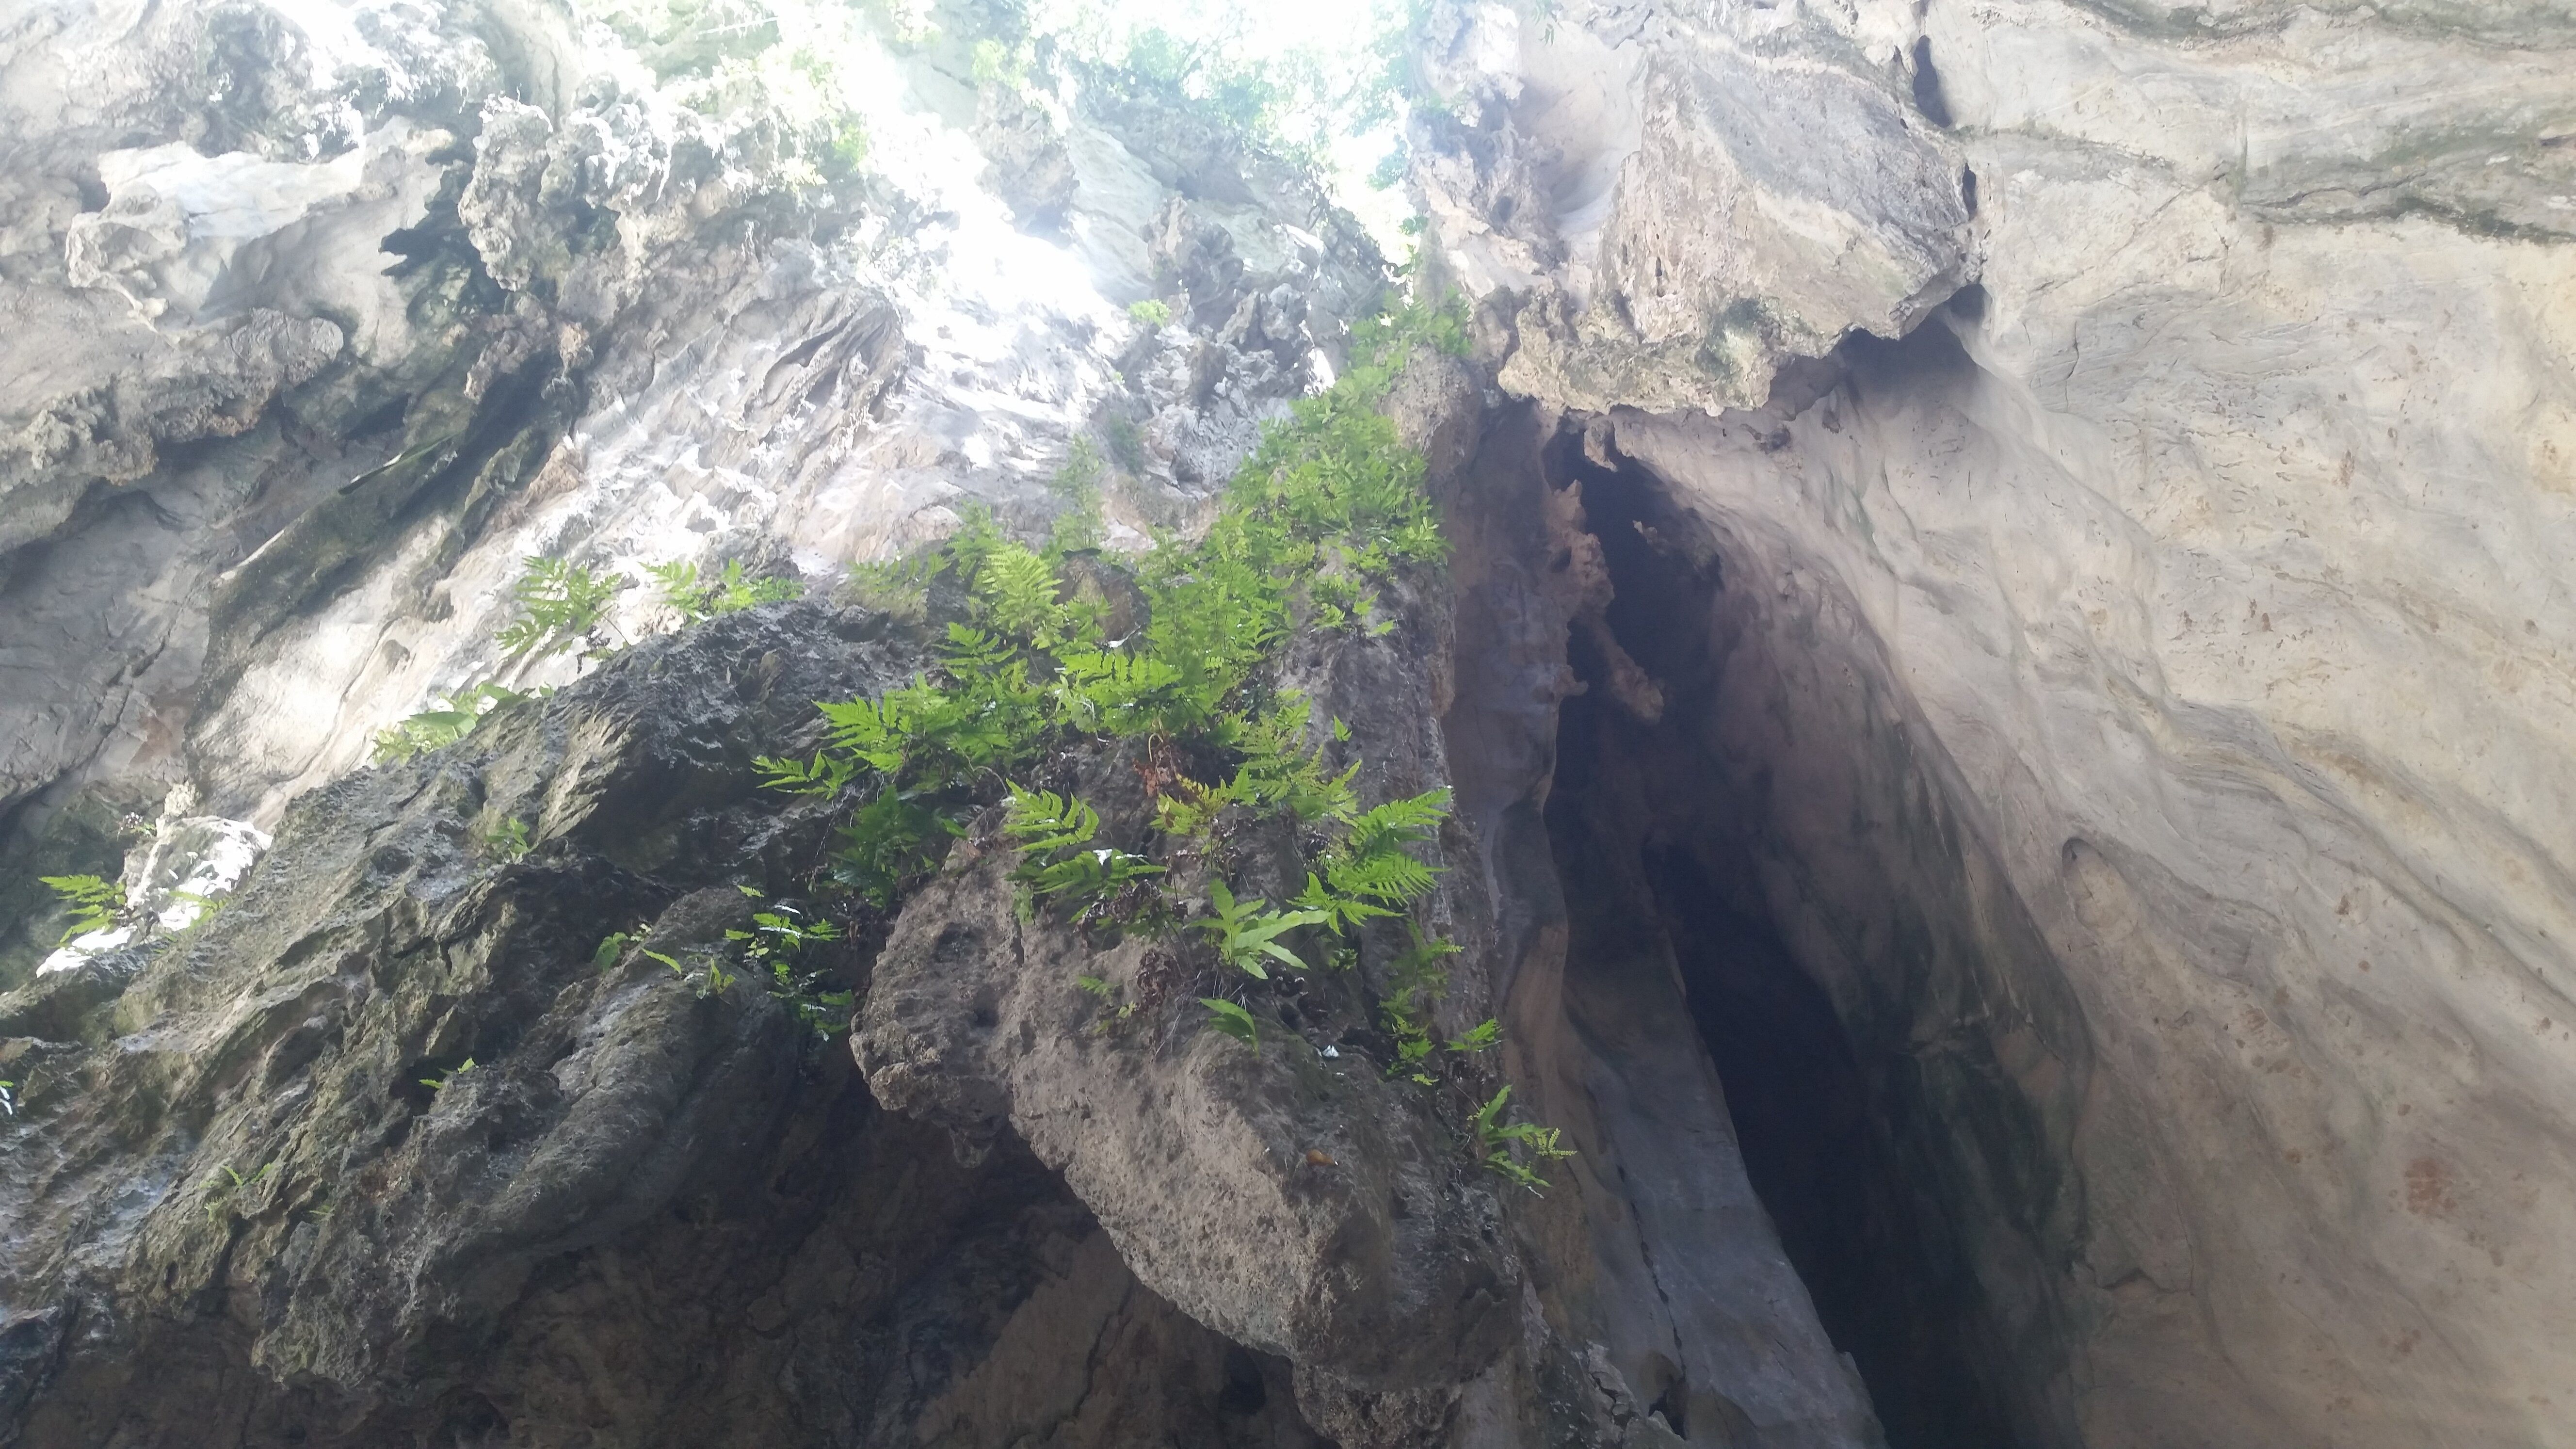 Looking up at a stalactite with growing foliage.